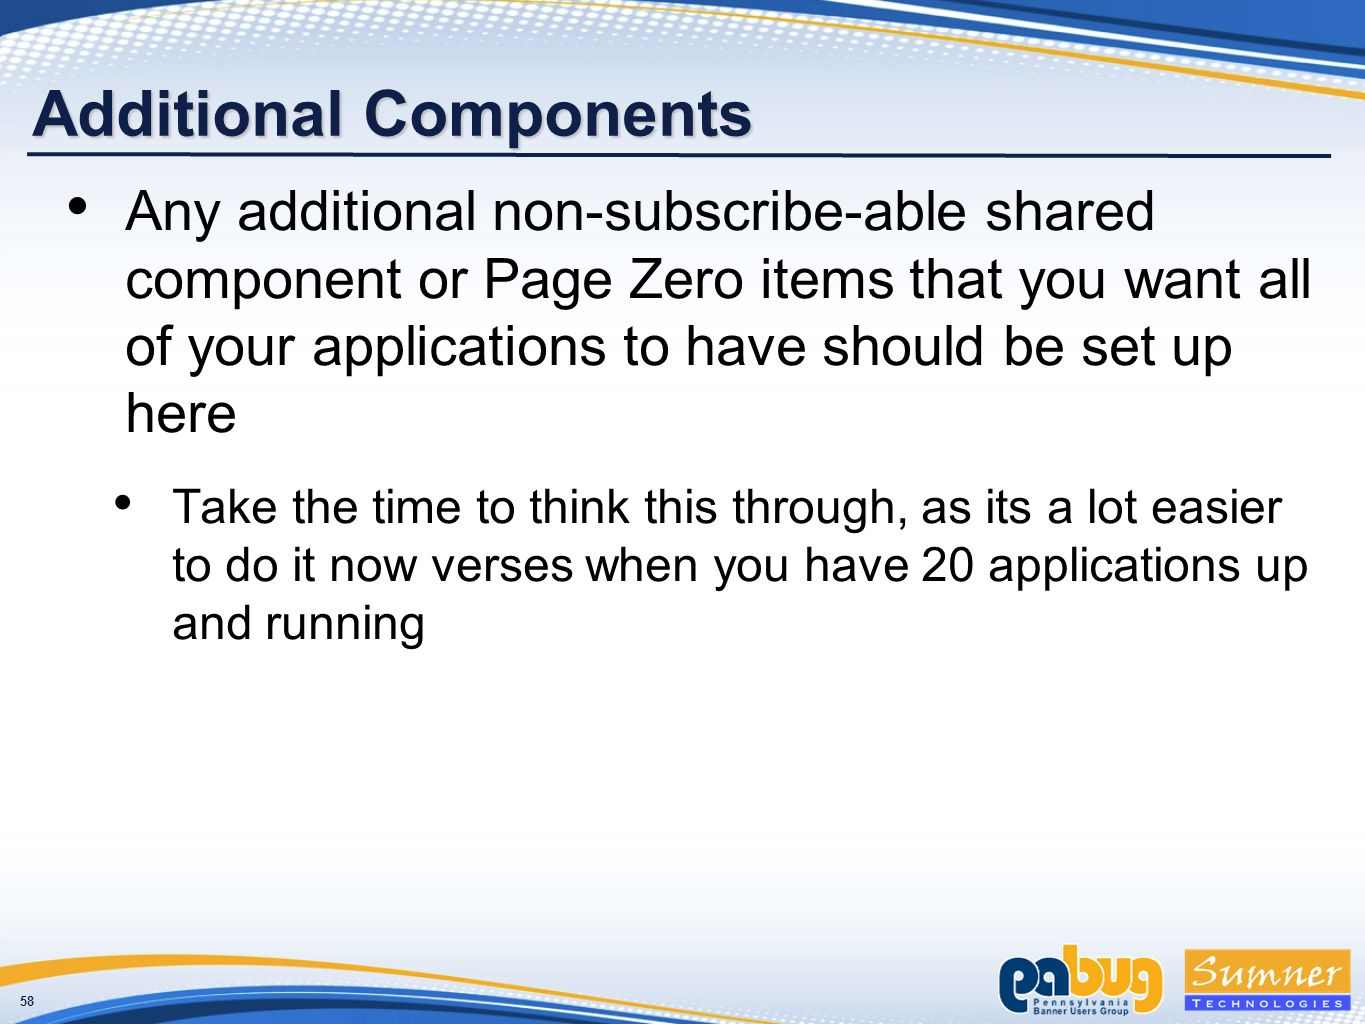 58 Additional Components Any additional non-subscribe-able shared component or Page Zero items that you want all of your applications to have should be set up here Take the time to think this through, as its a lot easier to do it now verses when you have 20 applications up and running